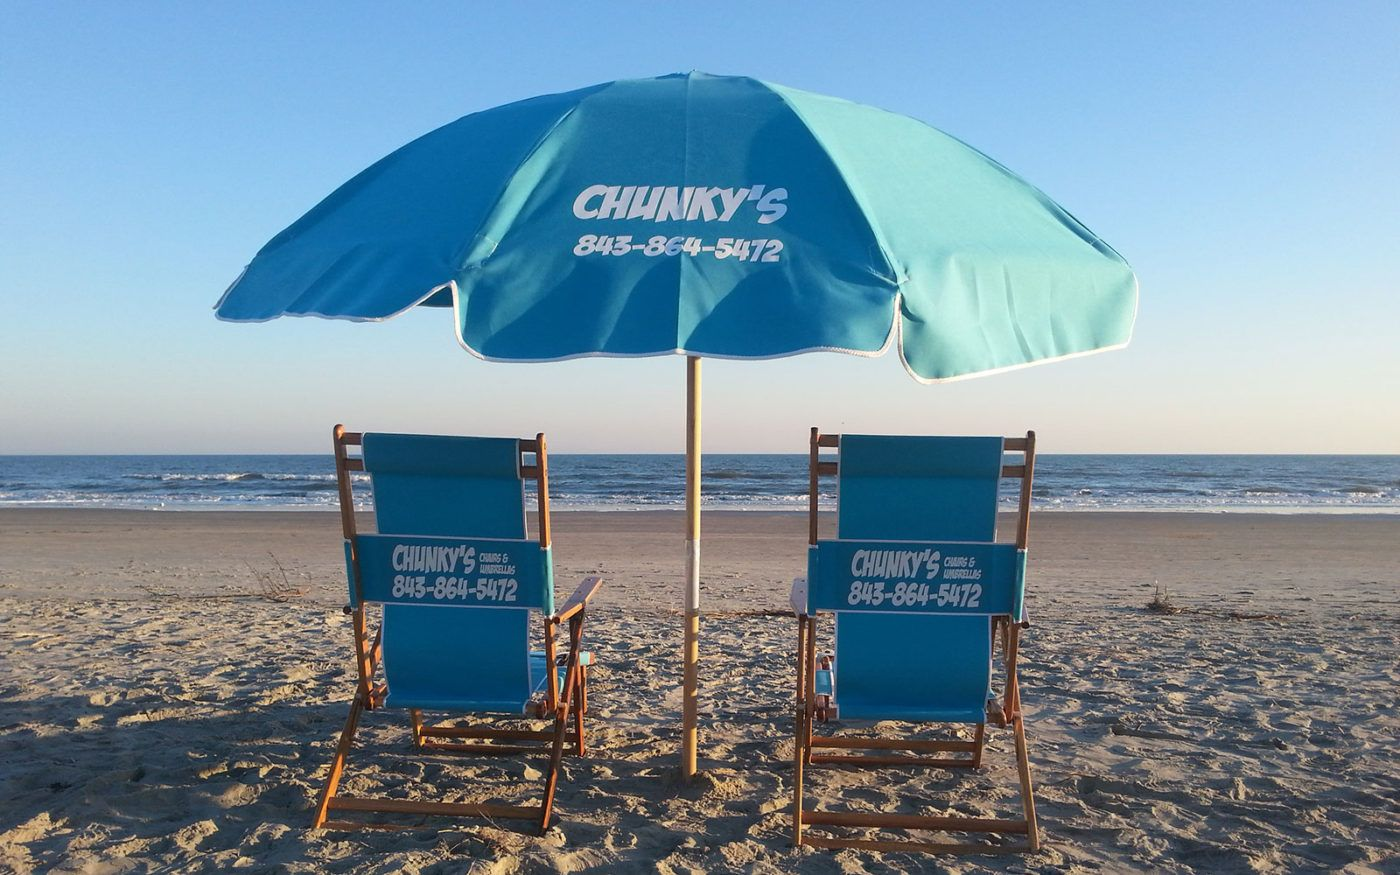 Chunky S Chairs And Umbrellas Beach Chair And Umbrella Rentals Isle Of Palms Sc Isle Of Palms Beach Beach Chair Umbrella Beach Chairs